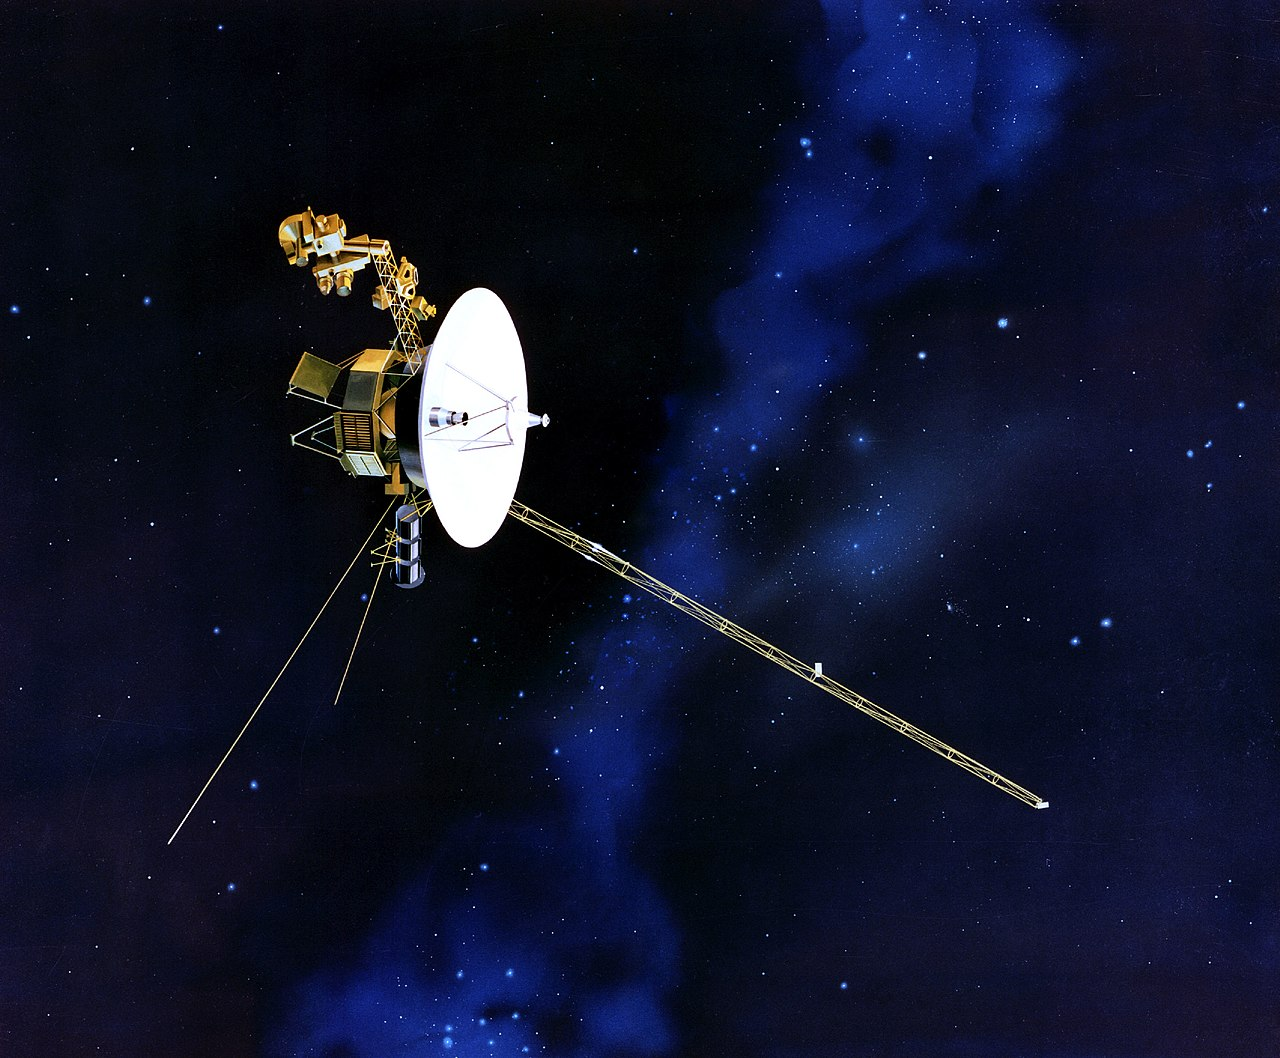 https://upload.wikimedia.org/wikipedia/commons/thumb/2/29/Voyager_spacecraft.jpg/1280px-Voyager_spacecraft.jpg